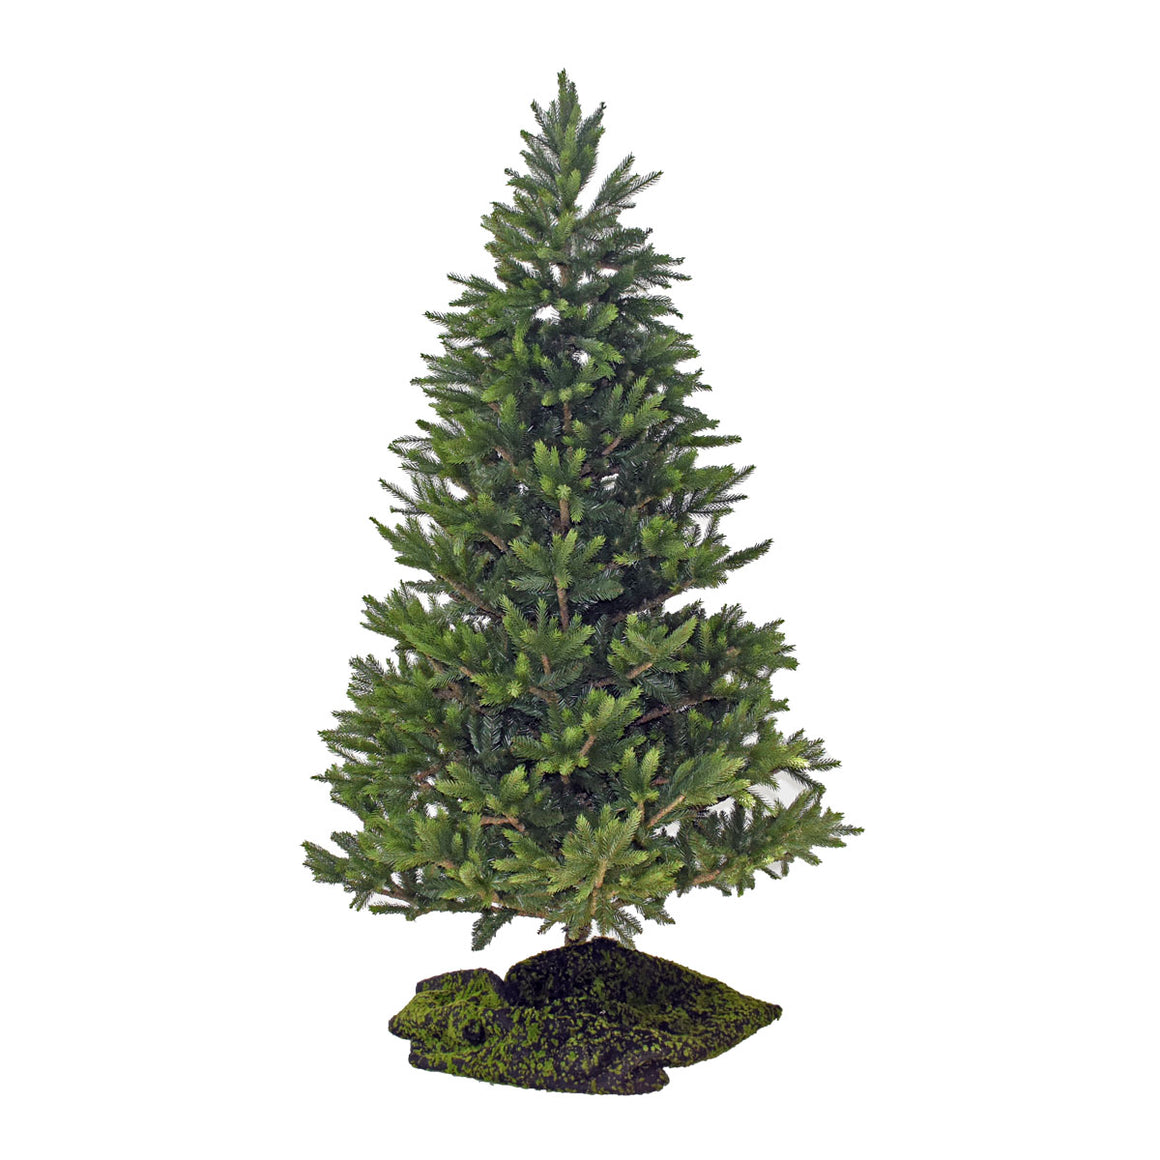 Christmas Tree - Green with No Lights, Undecorated